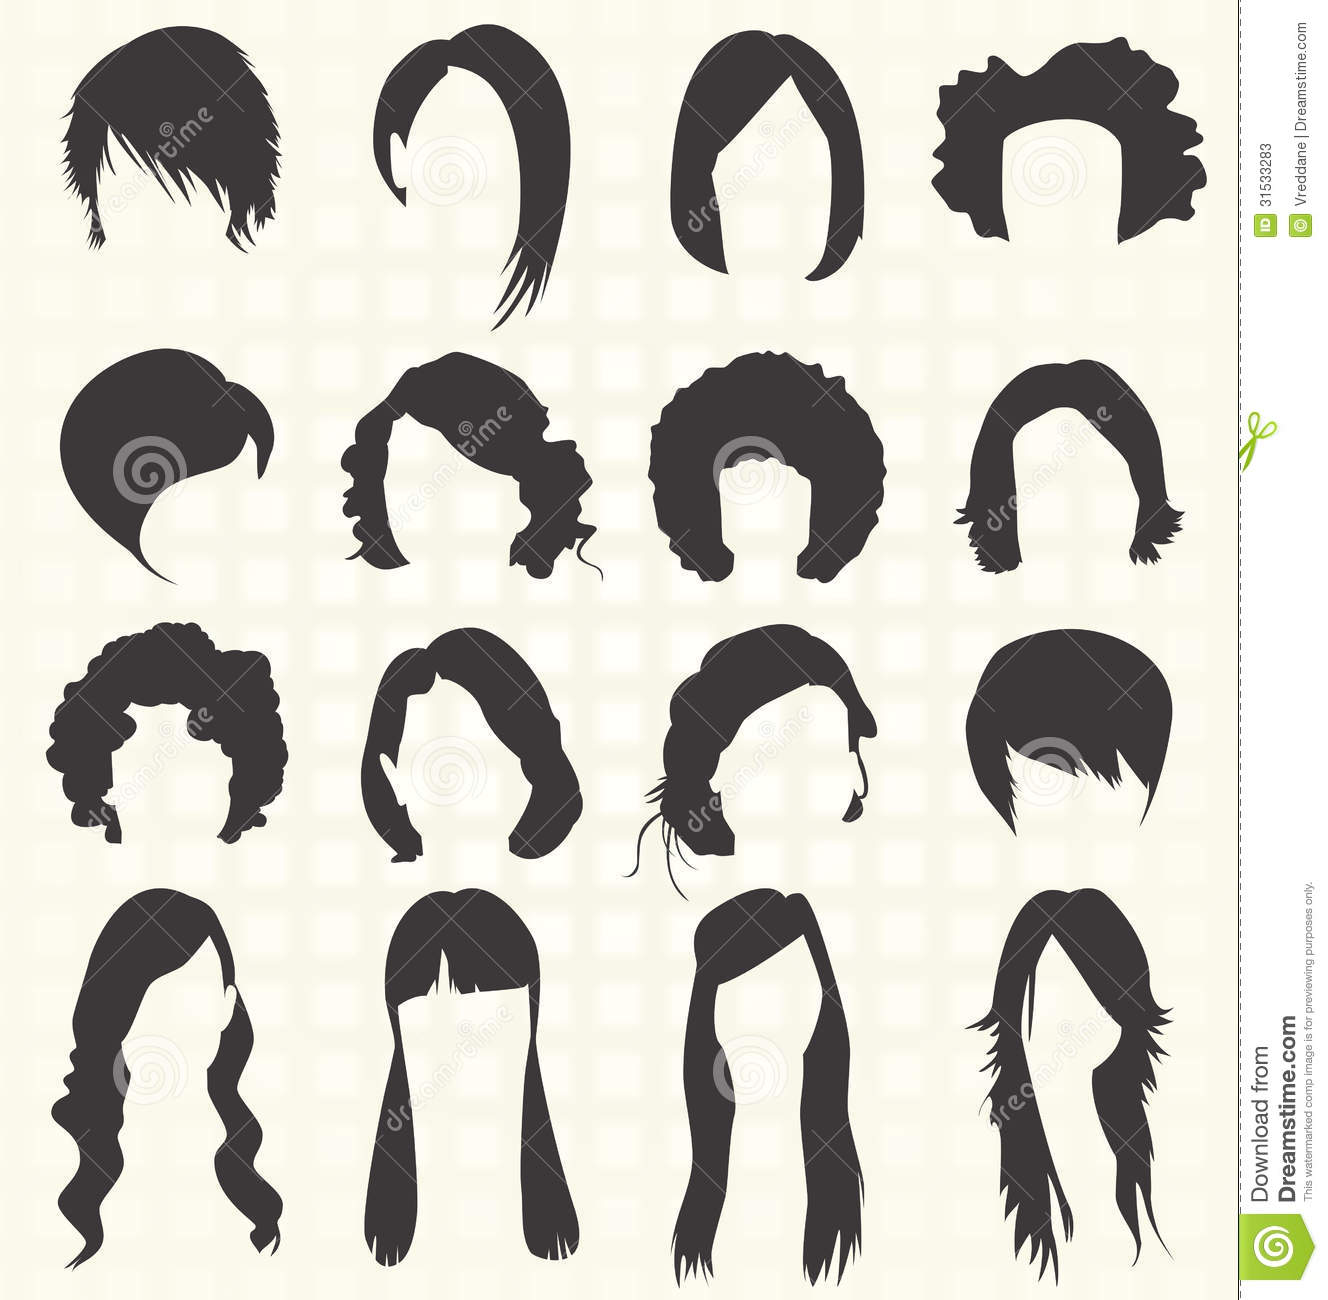 Hairstyle Vector : Vector Set: Women Hairstyle Silhouettes Stock Photos - Image: 31533283